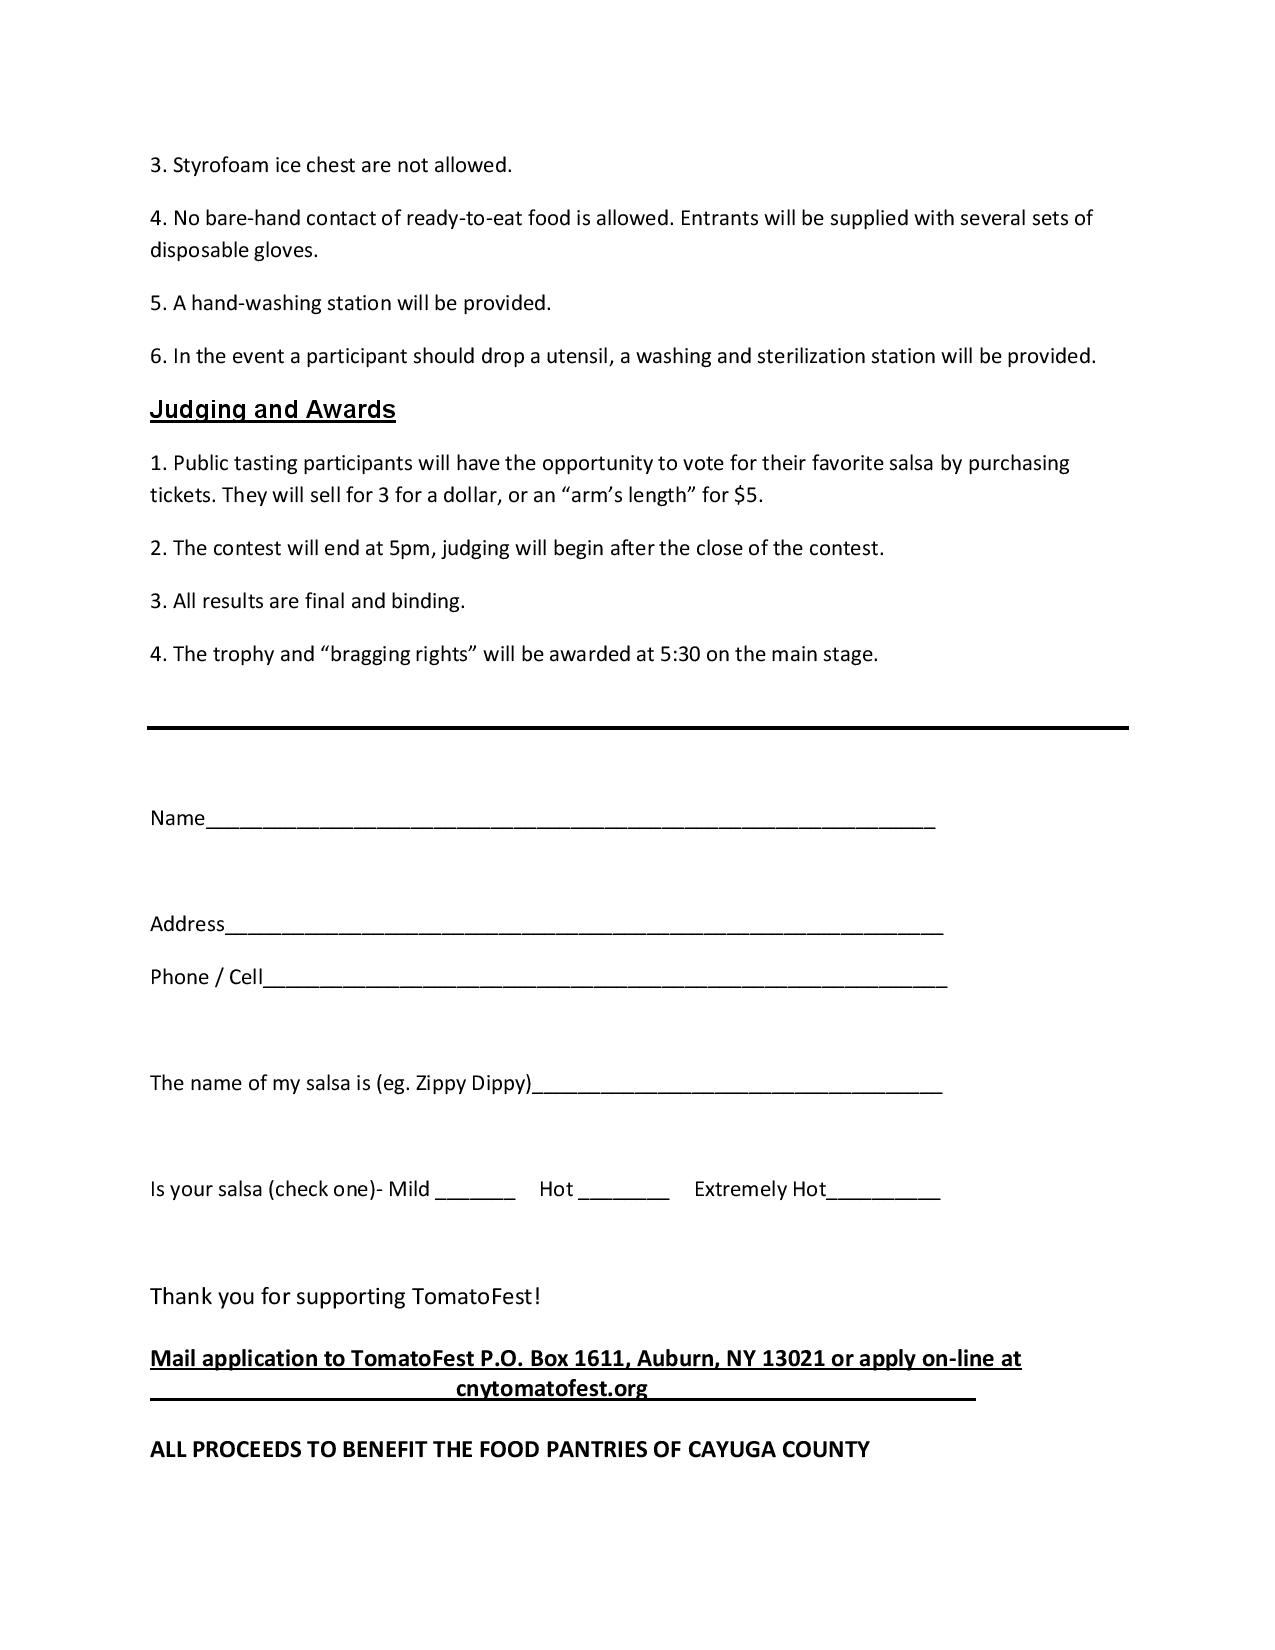 TomatoFest Salsa Contest Rules 2019-page-002.jpg